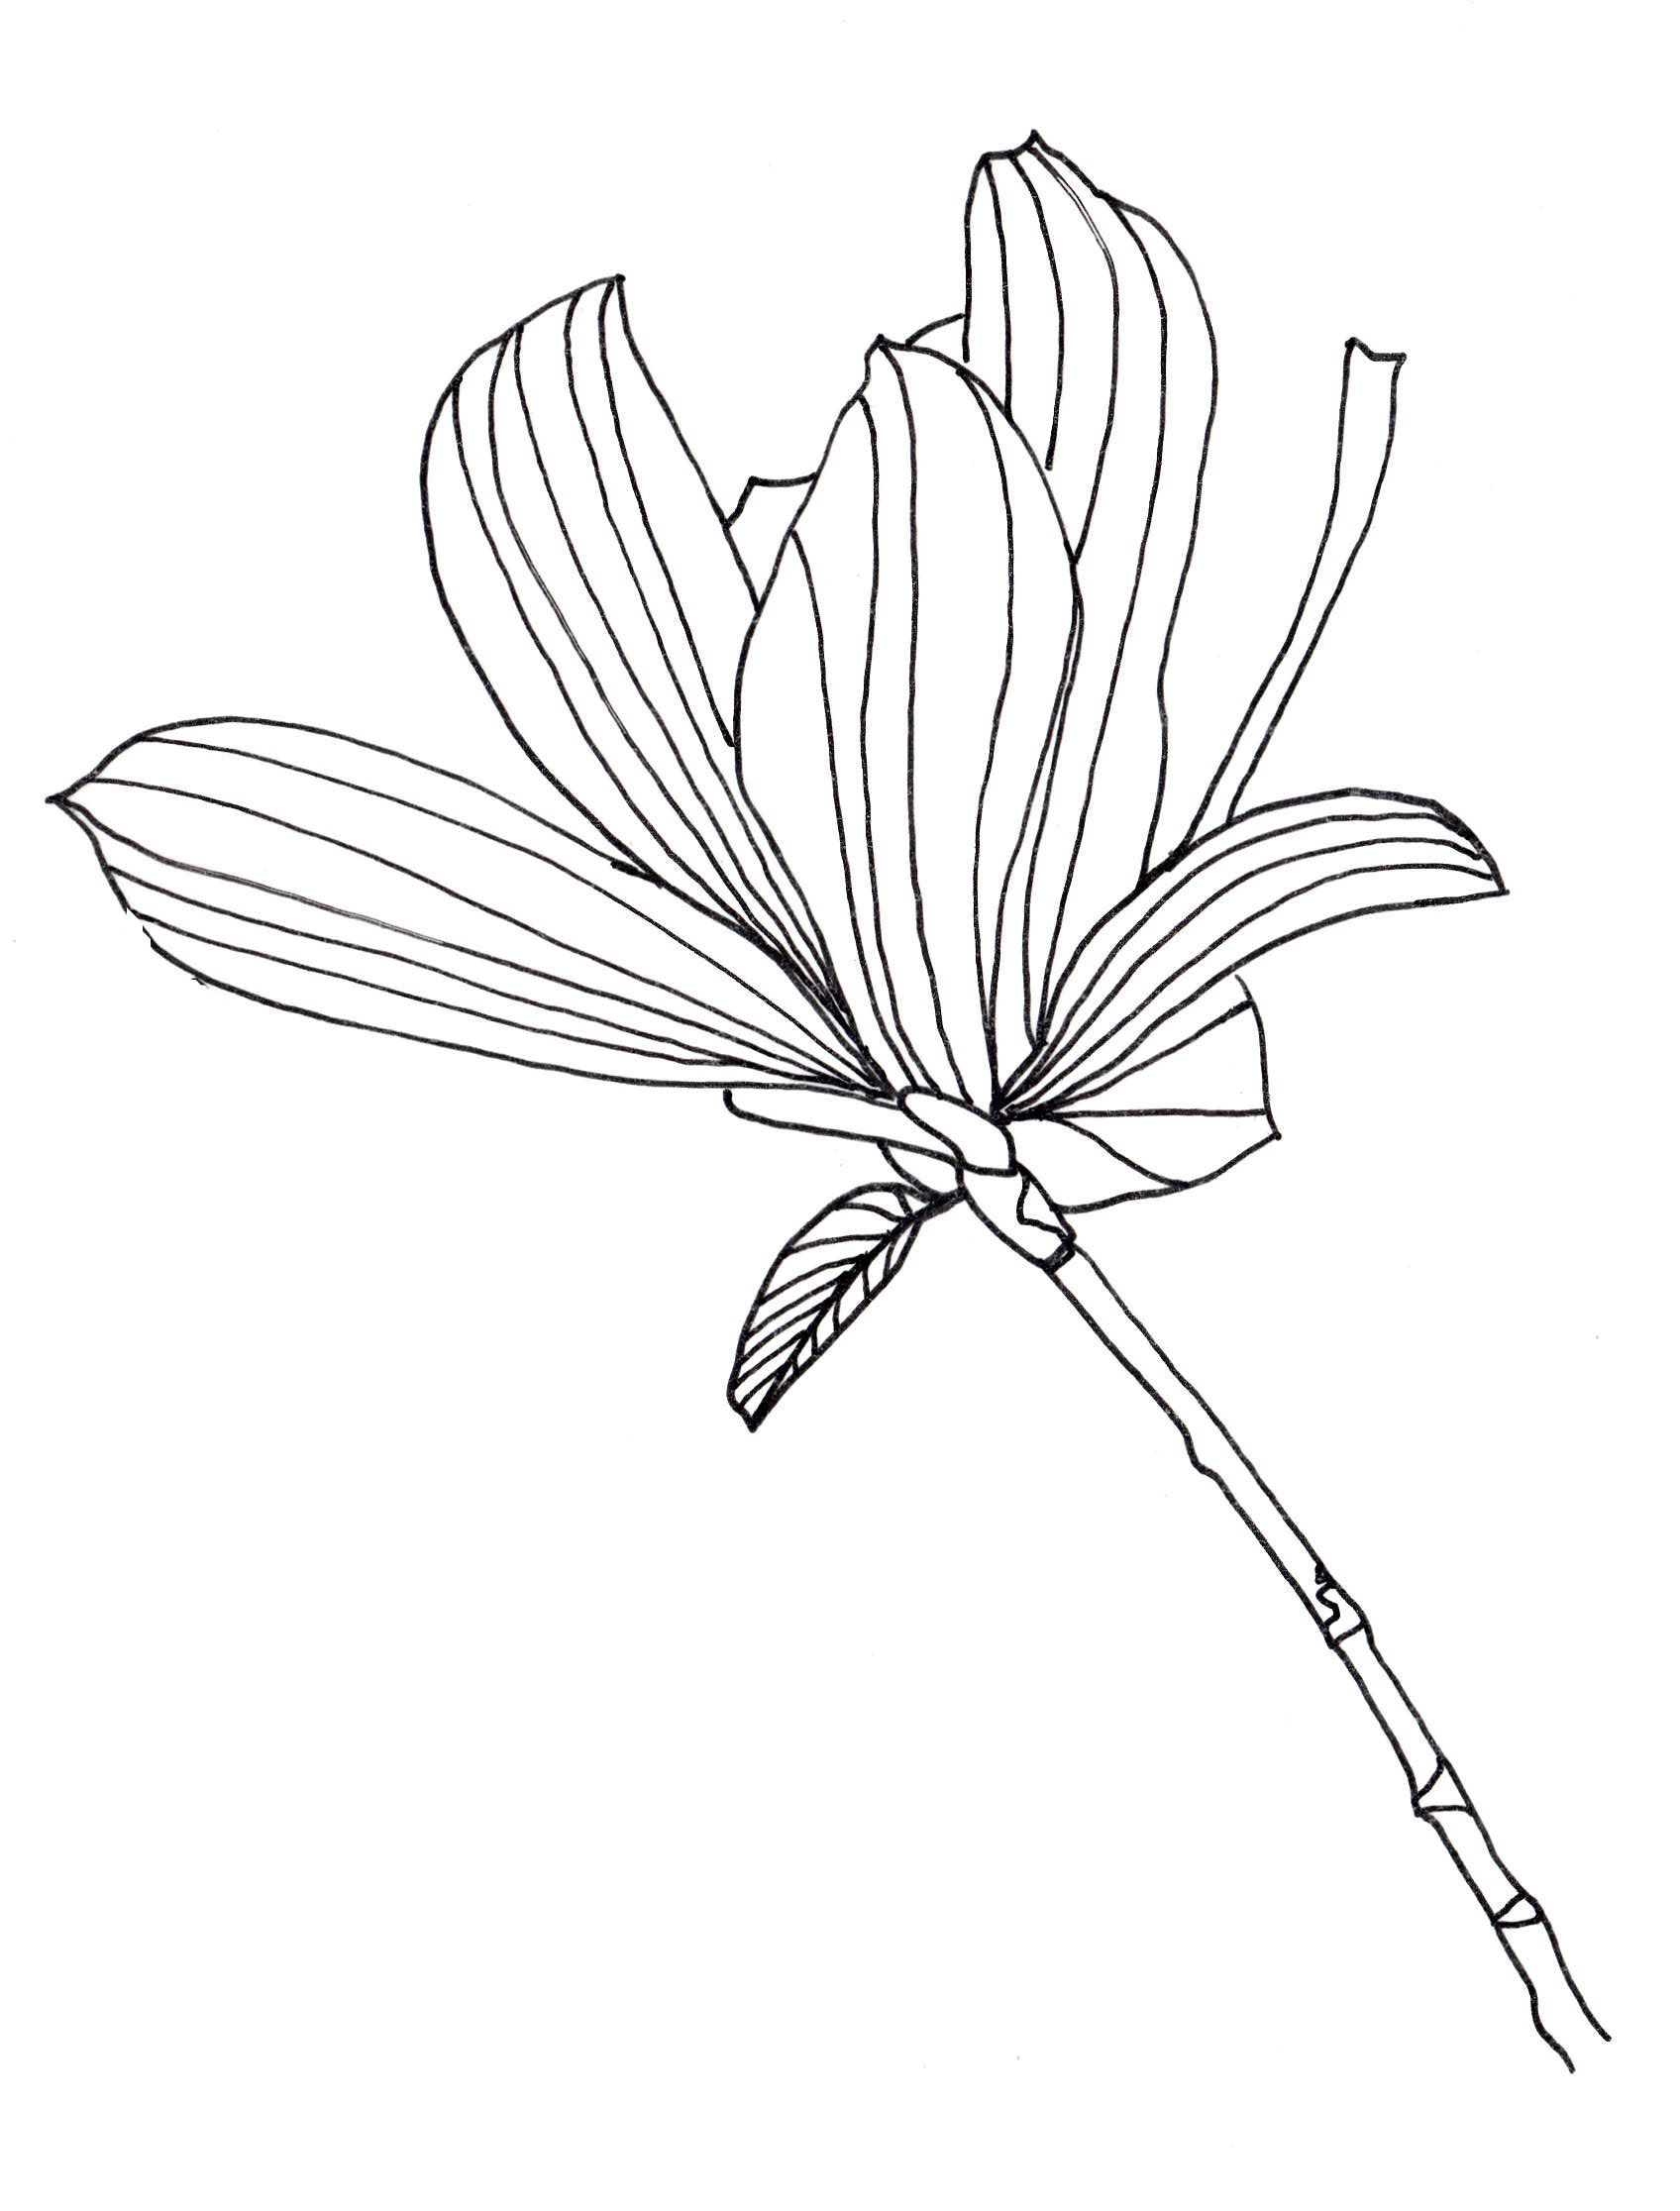 Flower Petals Line Drawing : Tulip petals drawing imgkid the image kid has it